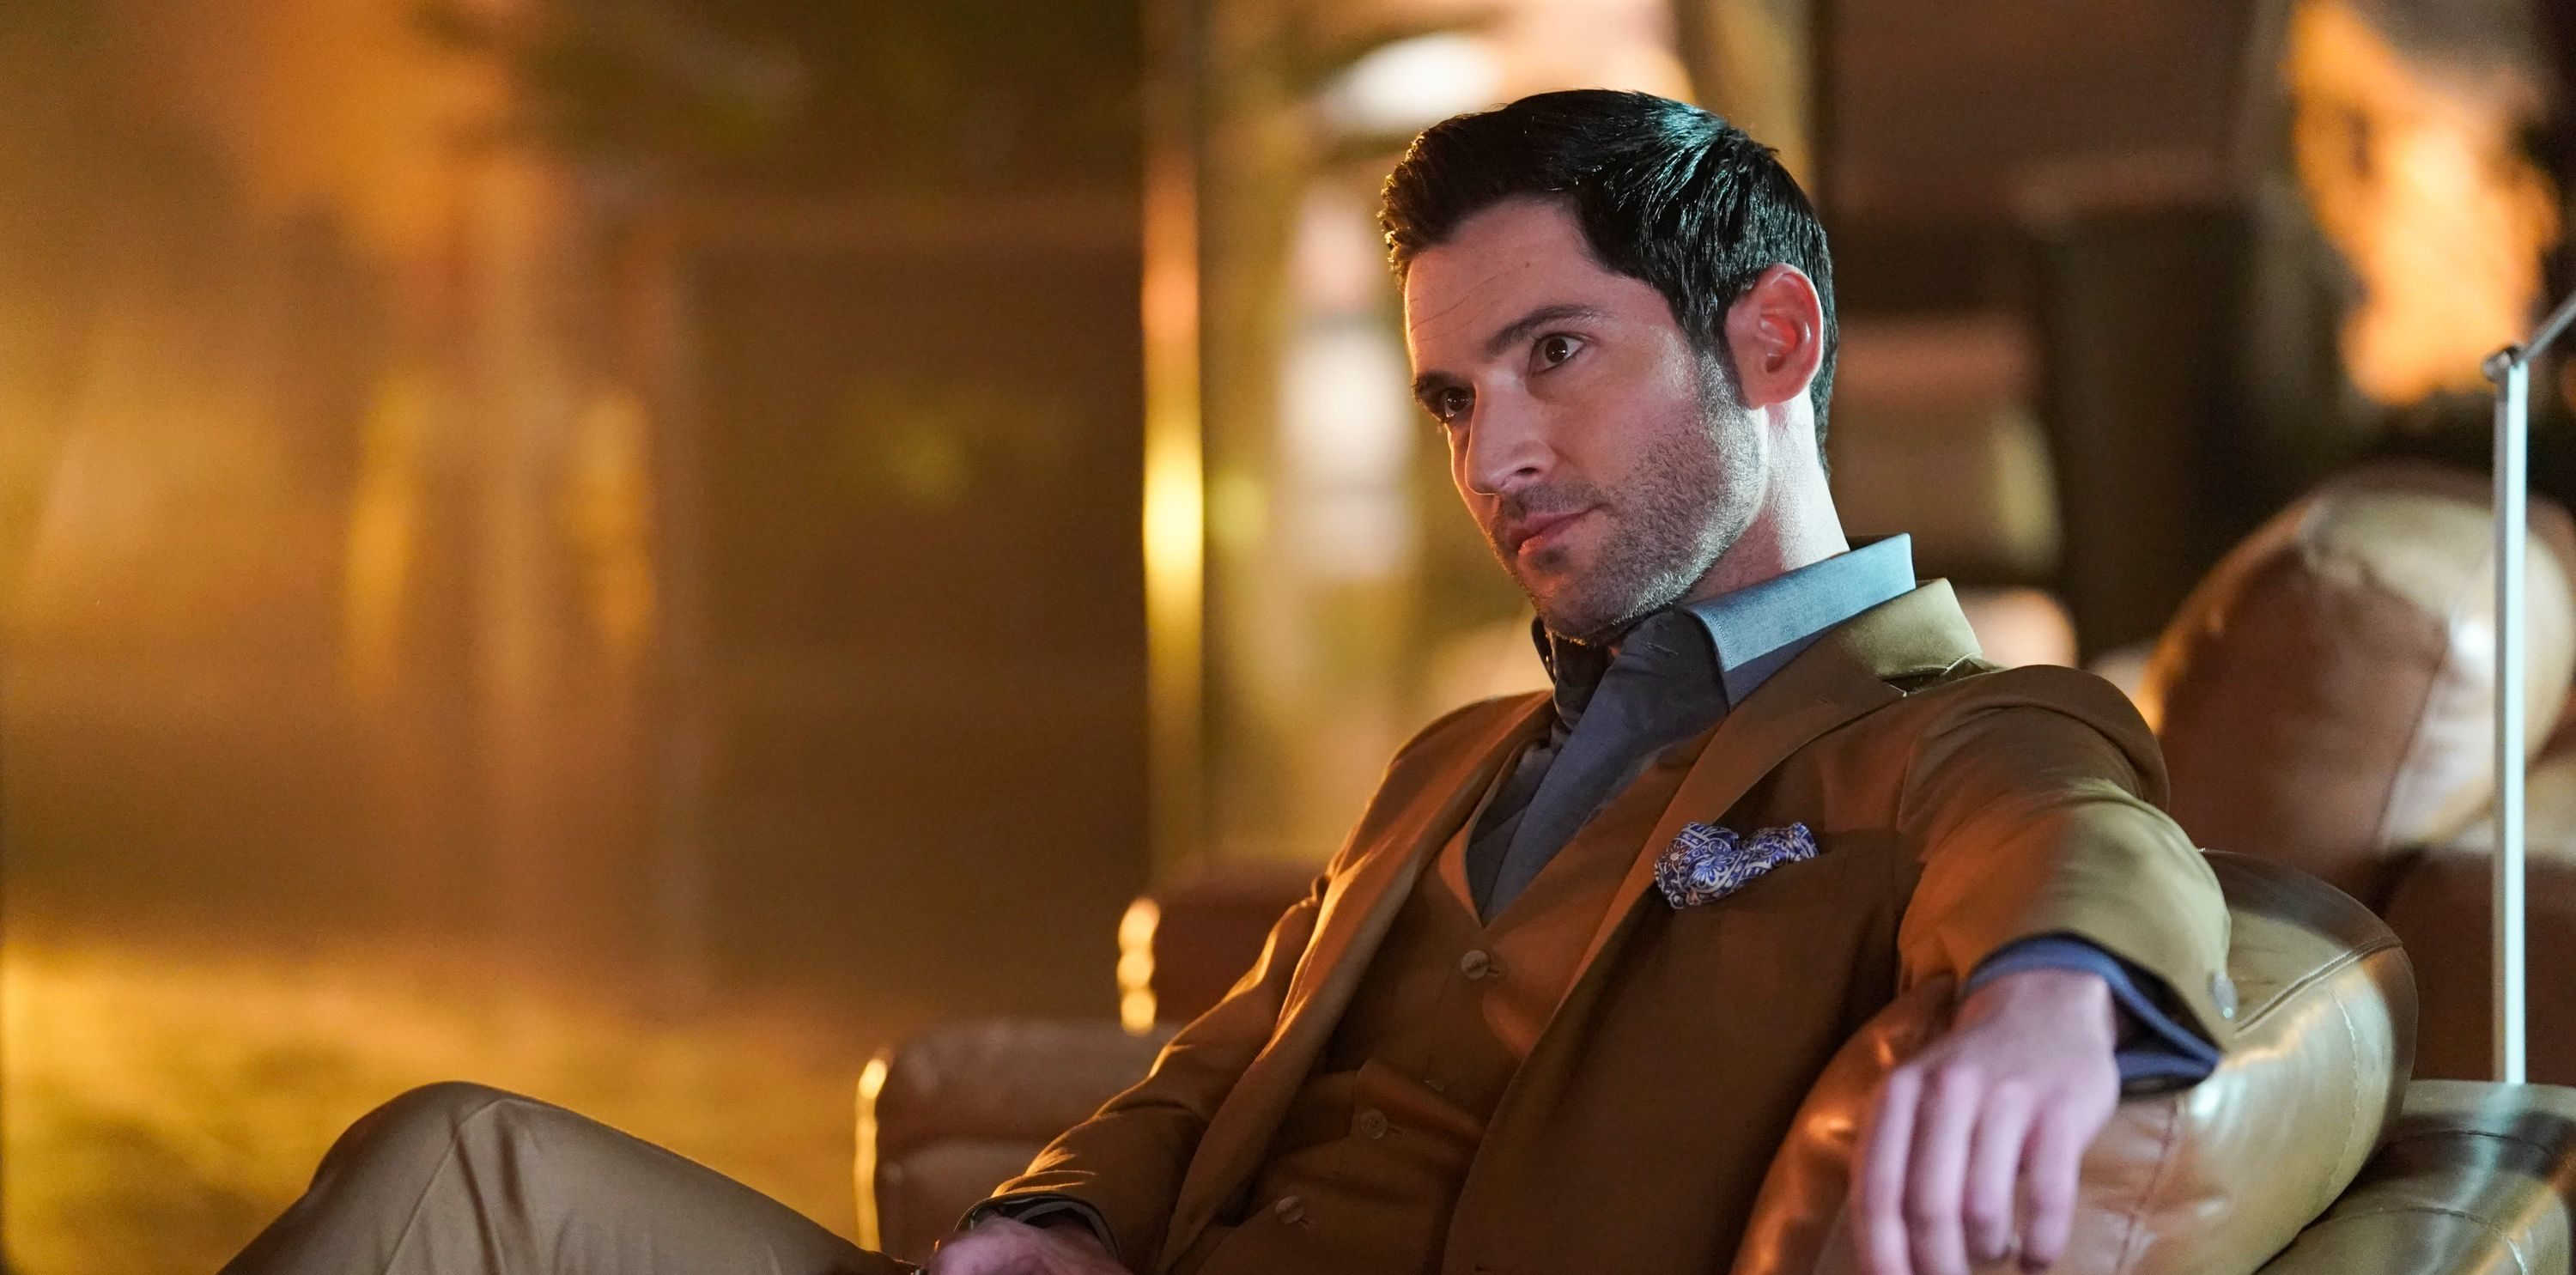 Lucifer Season 5 Episode Title List Plot Predictions and Expectations based on the Titles